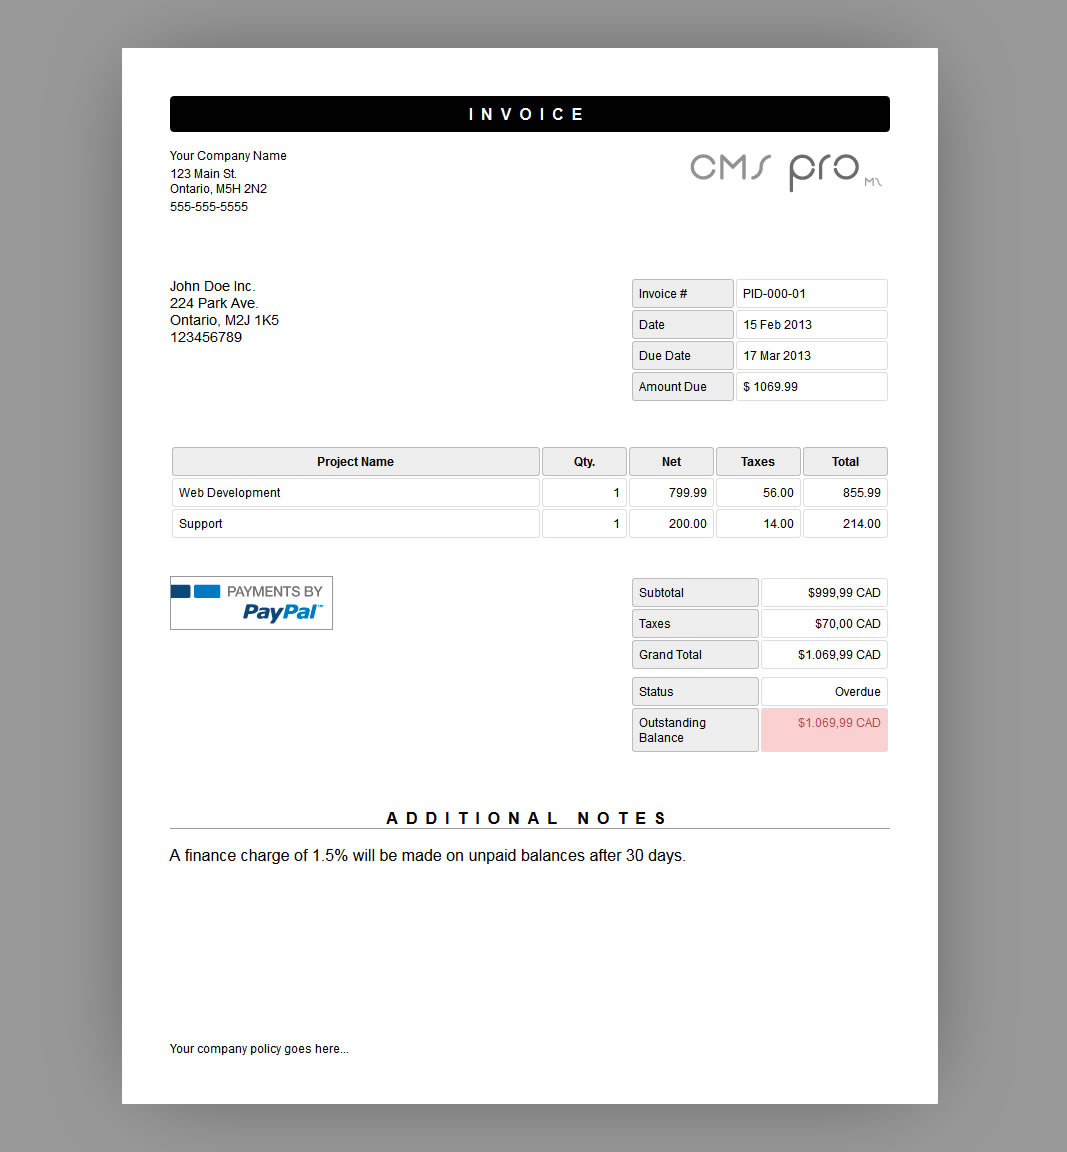 Invoicing Module For CMS Pro By Gewa CodeCanyon - Invoice module